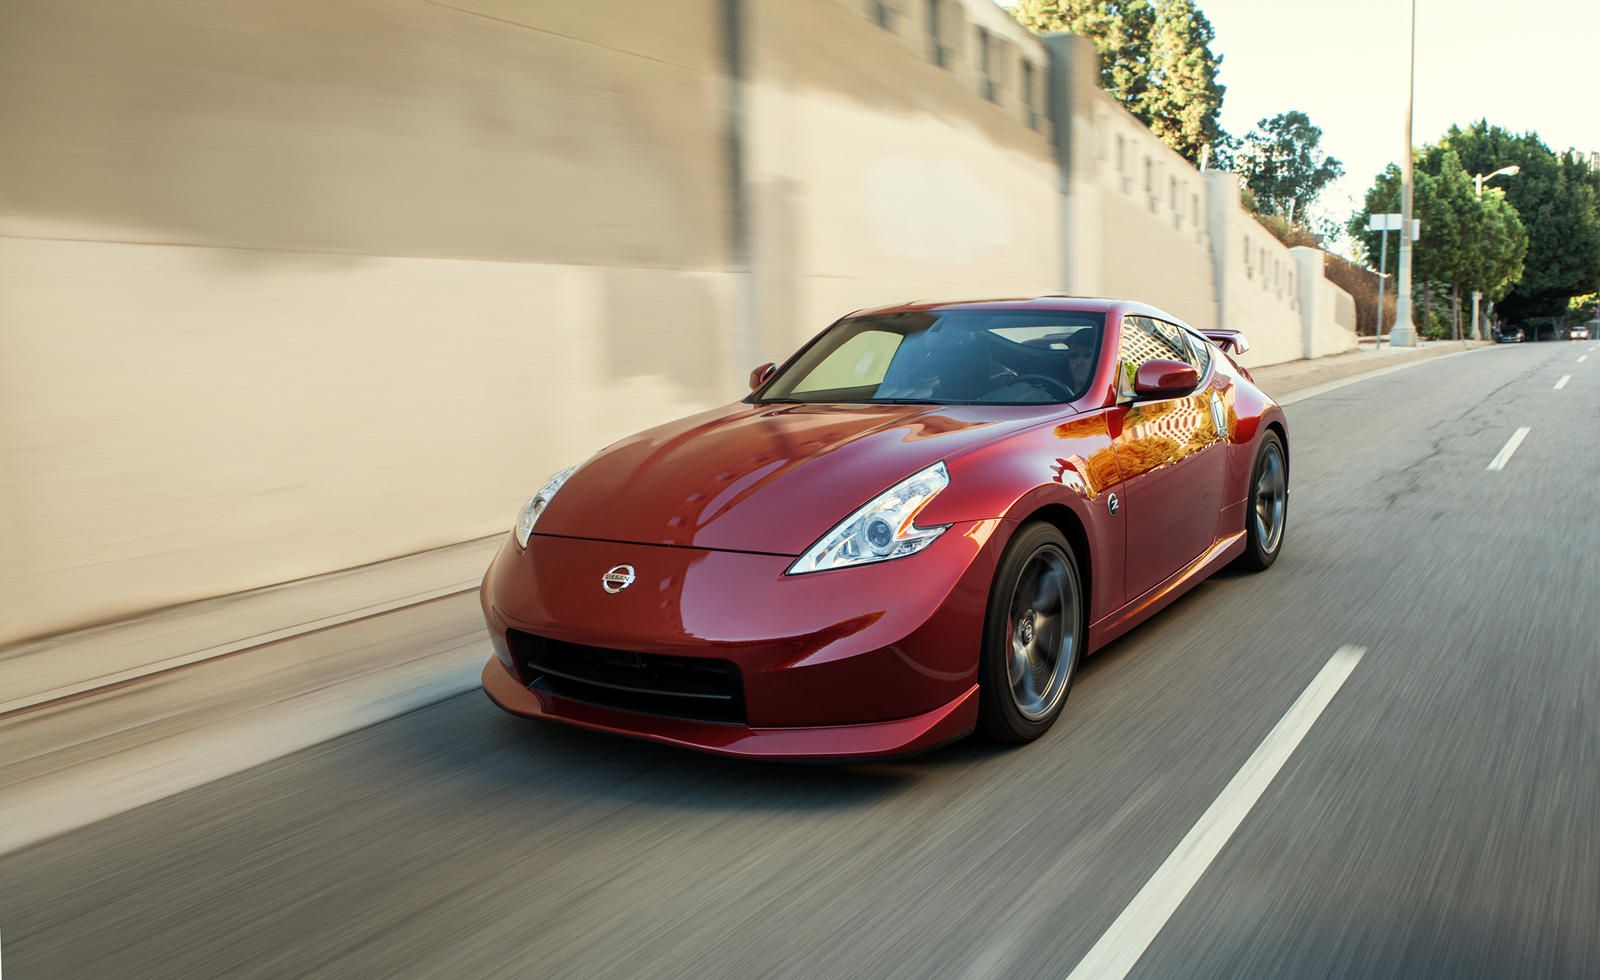 Is This The Logo For Nissan S Next Z Car The Logo For Nissan S 400z Might Just Have Been Exposed Looking Retro In 2020 Nissan Nismo Nissan Nissan 370z Nismo